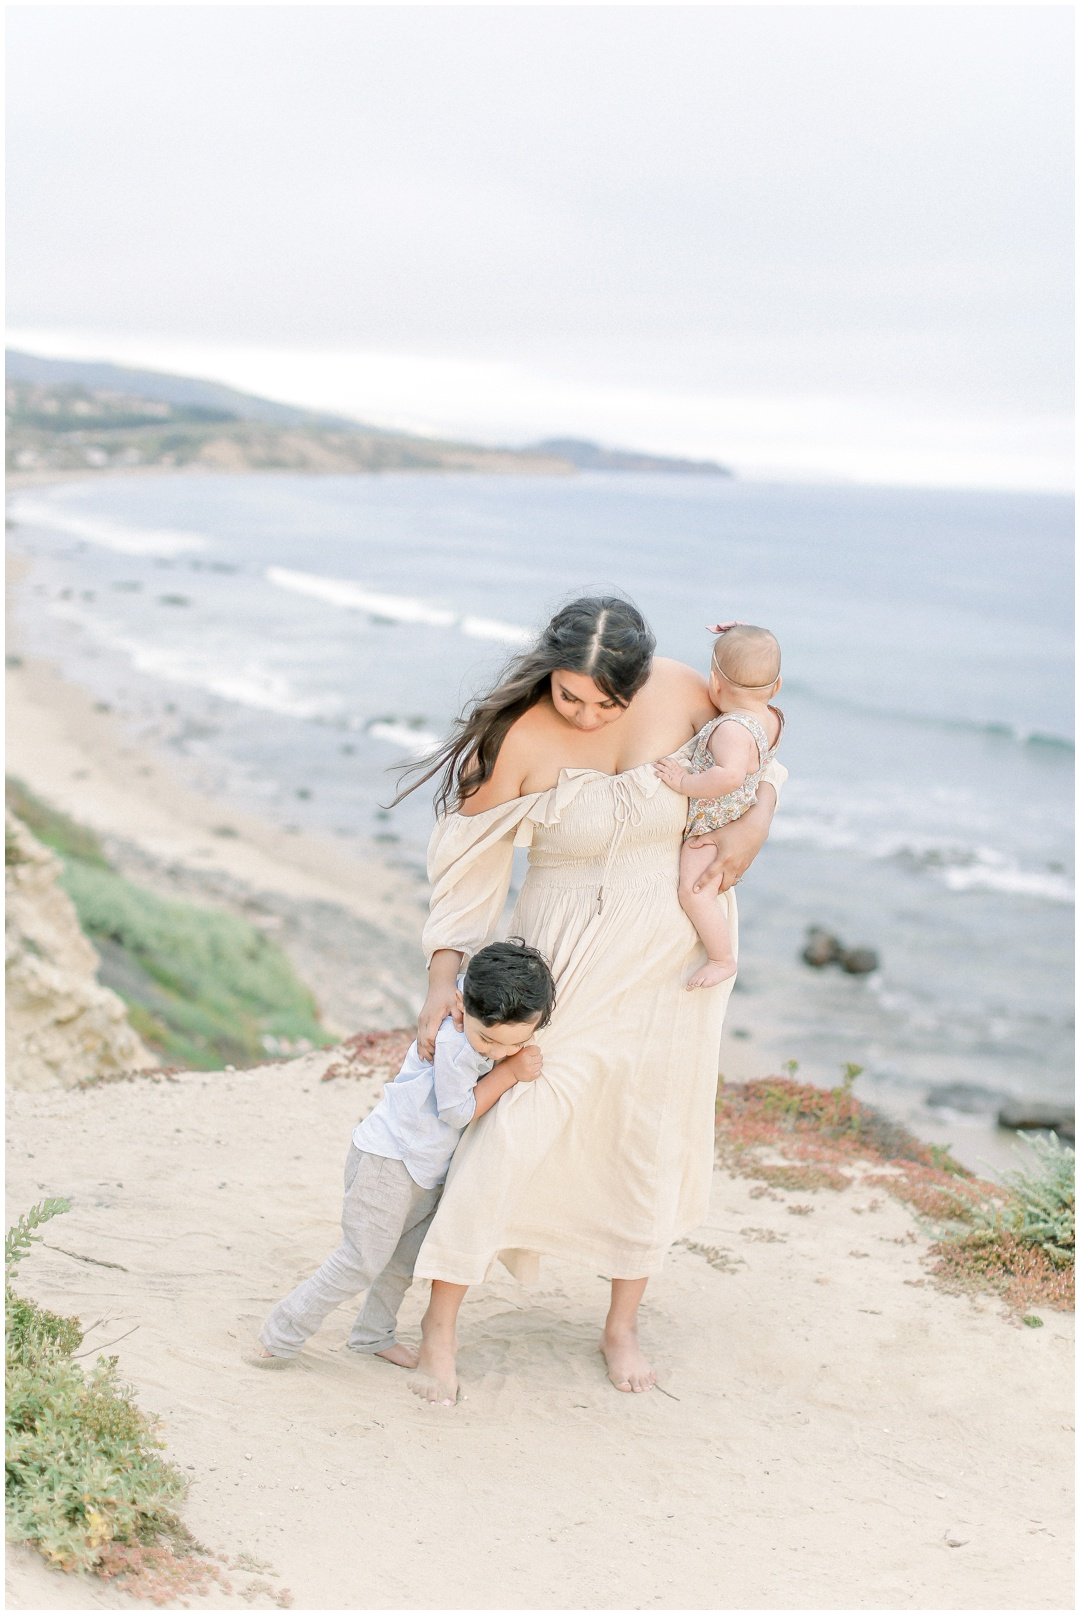 Newport_Beach_Newborn_Light_Airy_Natural_Photographer_Newport_Beach_Photographer_Orange_County_Family_Photographer_Cori_Kleckner_Photography_Huntington_Beach_Photographer_Family_OC_Newborn_Natalie_Nunez_Thomas_Nunez_Natalie_Roca_Rosh_Nunez_Family_3545.jpg